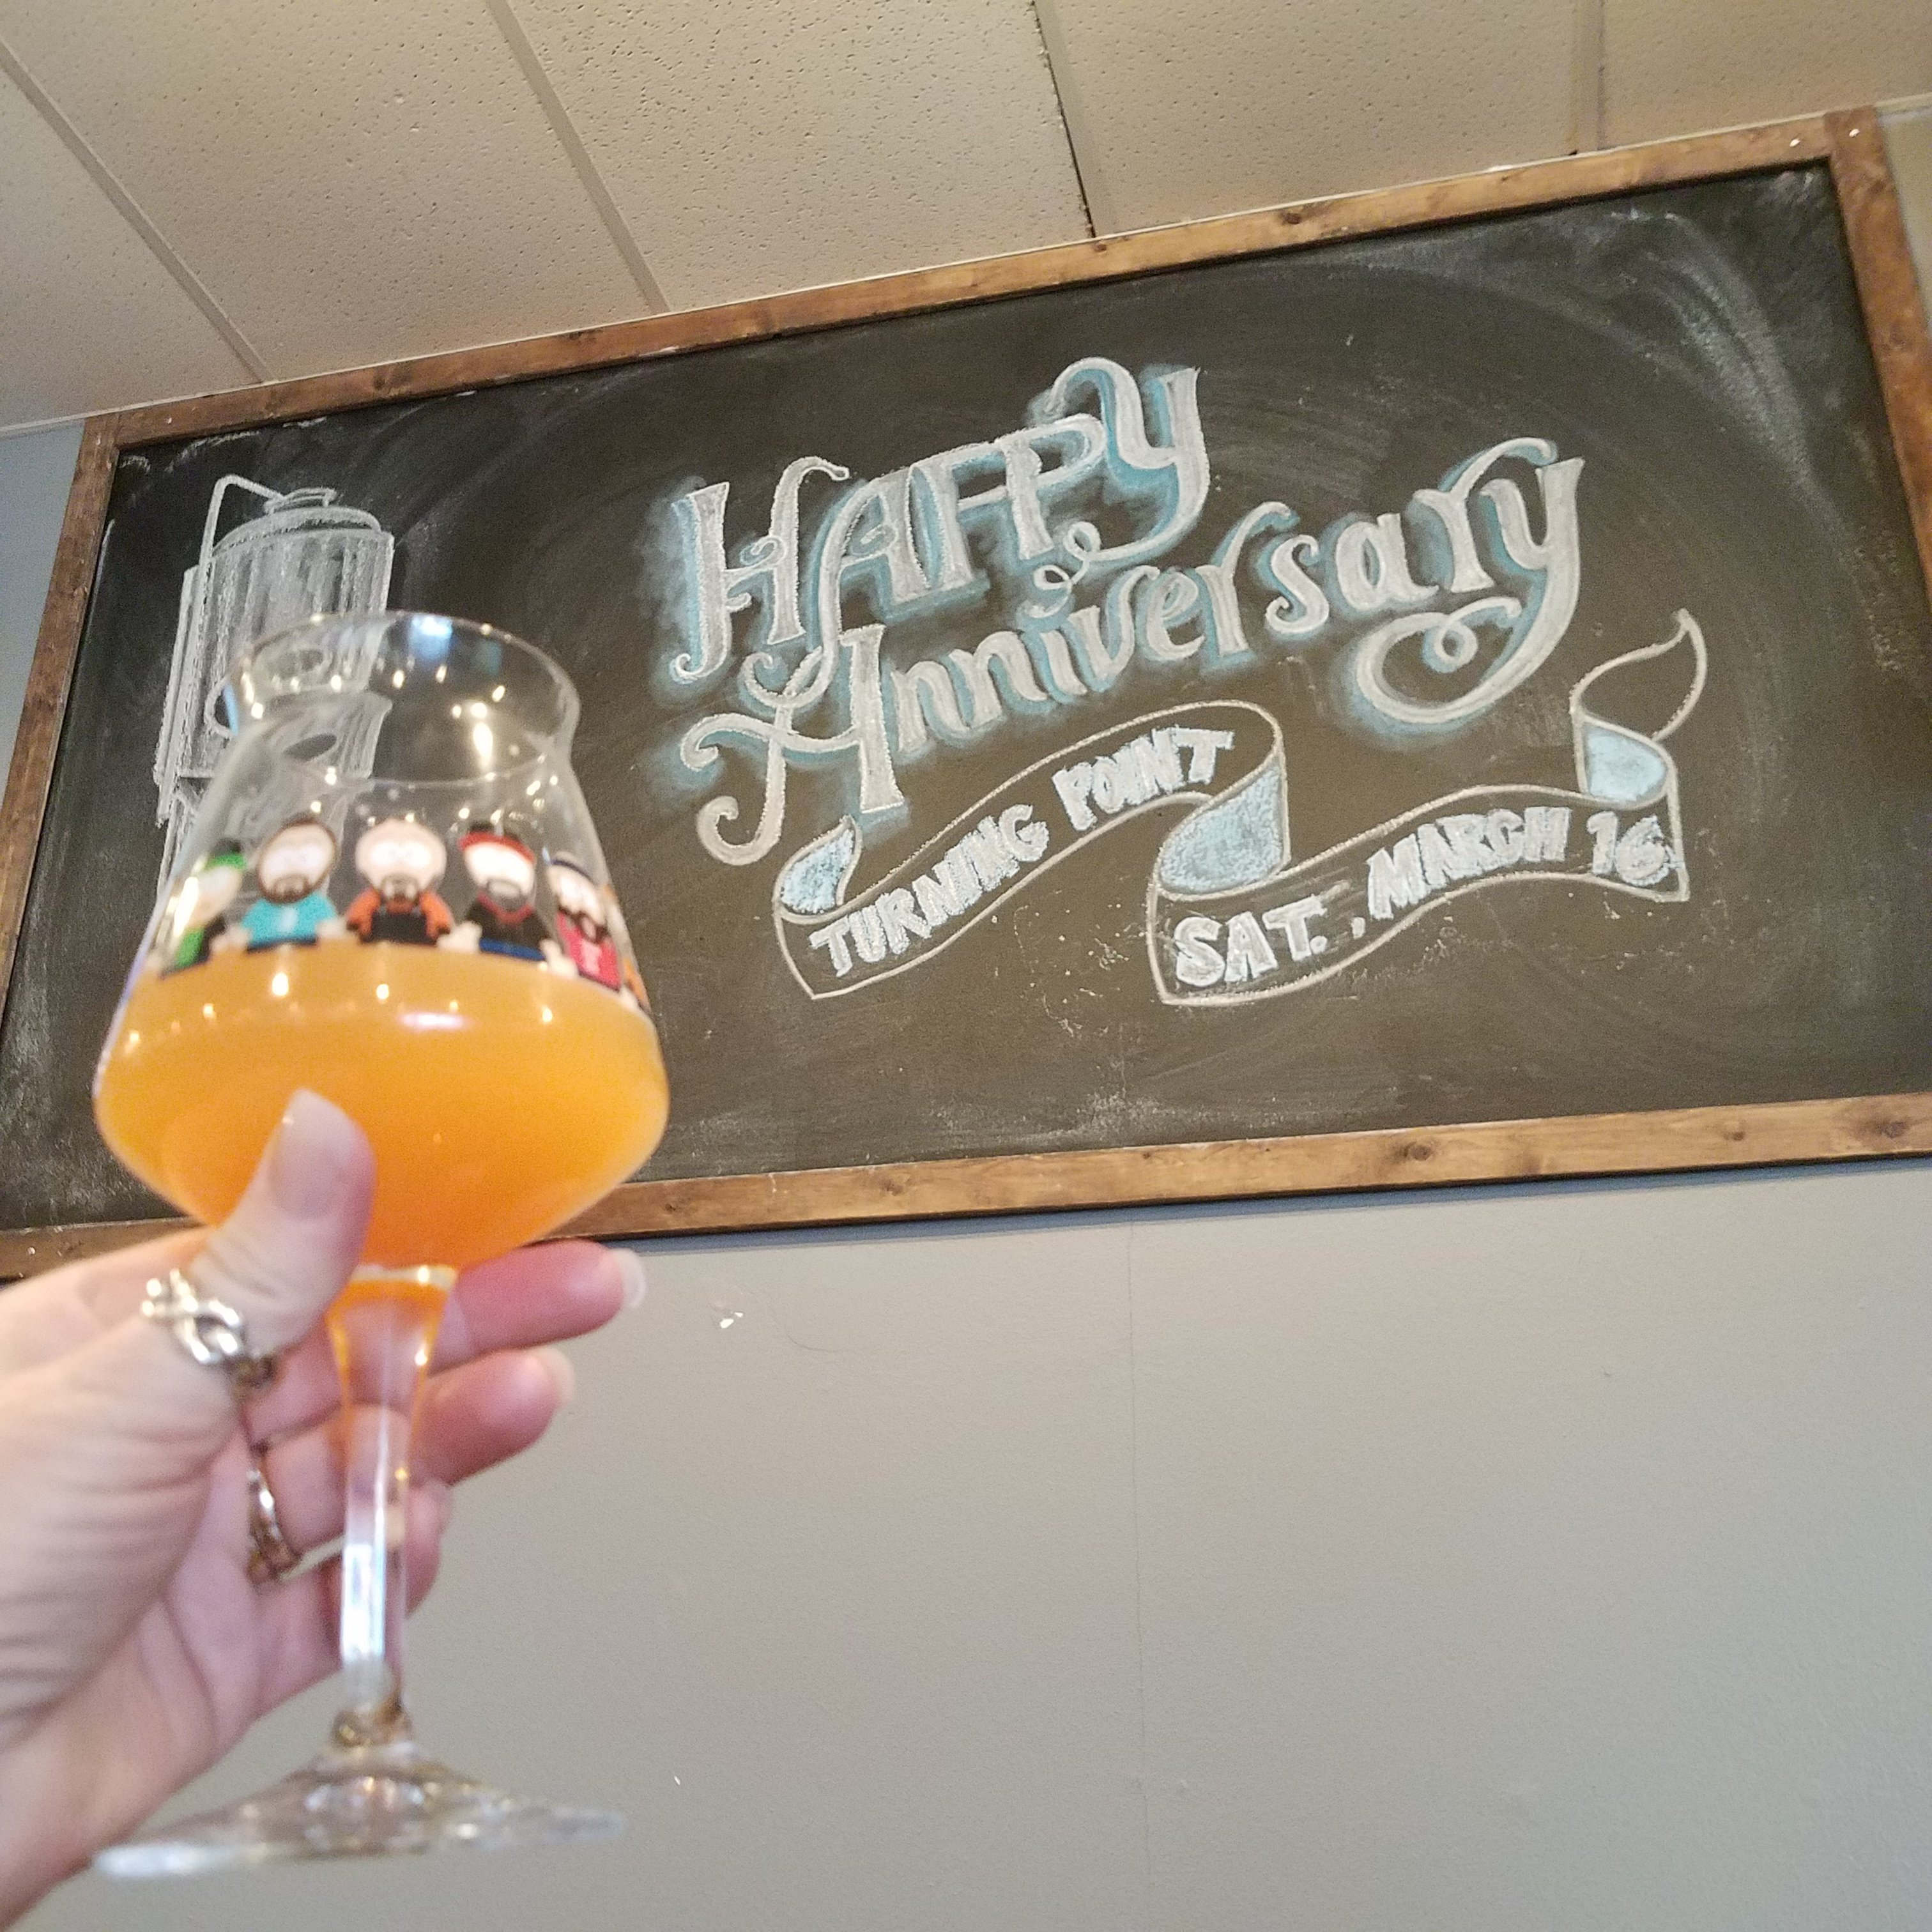 Turning Point Beer Turned 1!